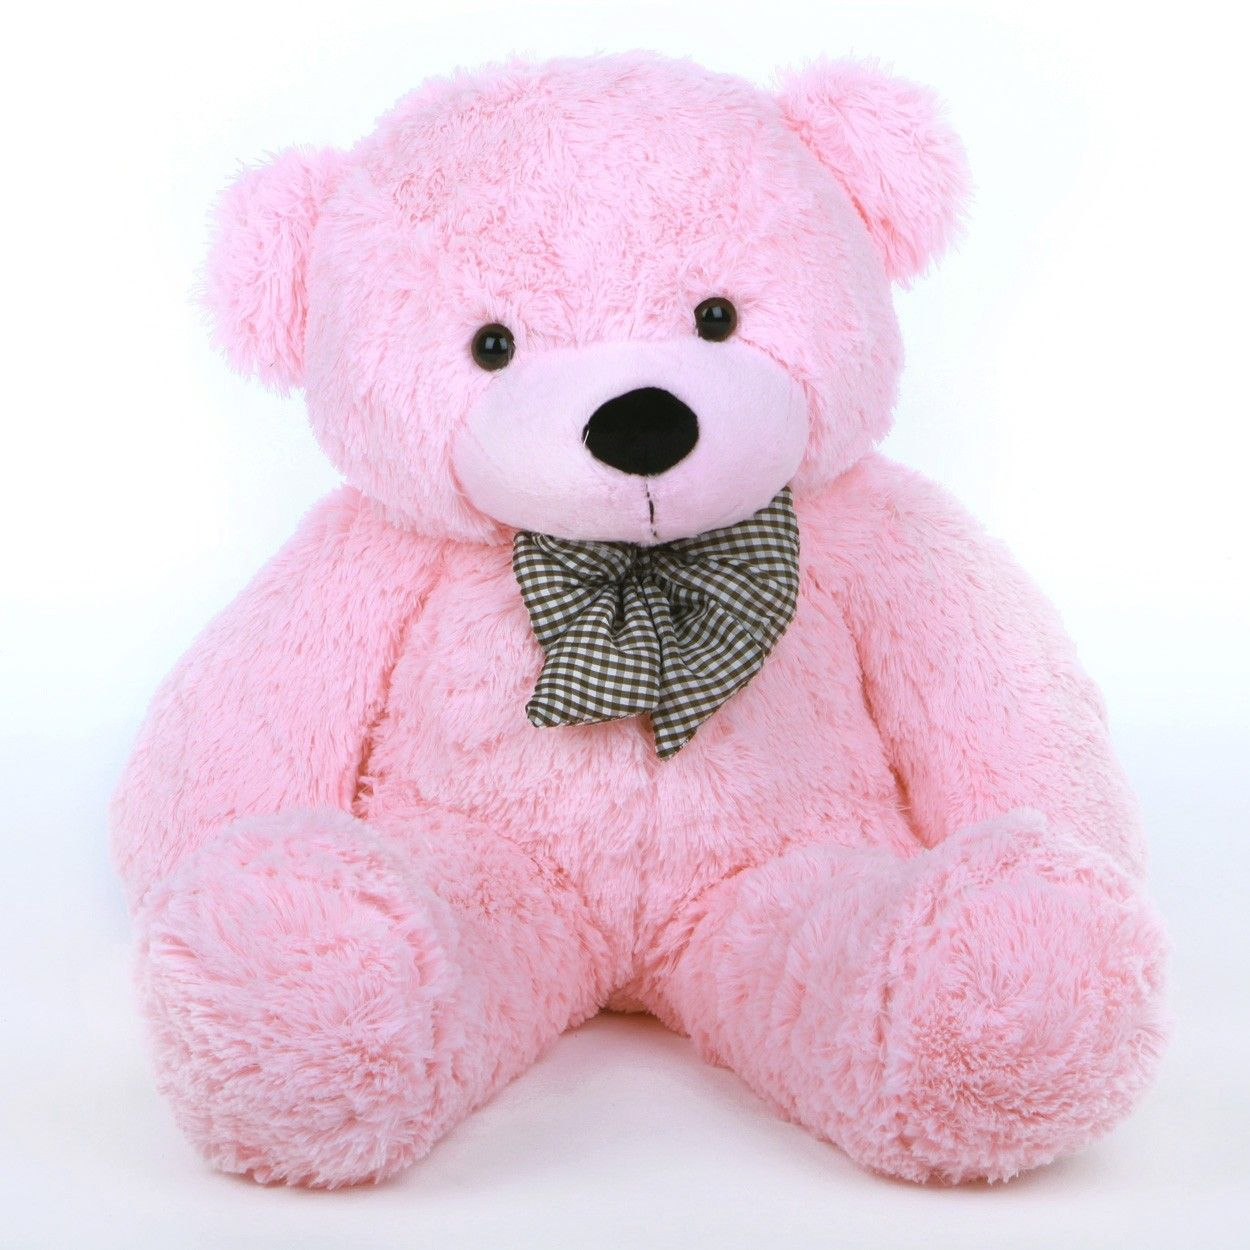 cute teddy bear pictures download free hd images hd wallpapers